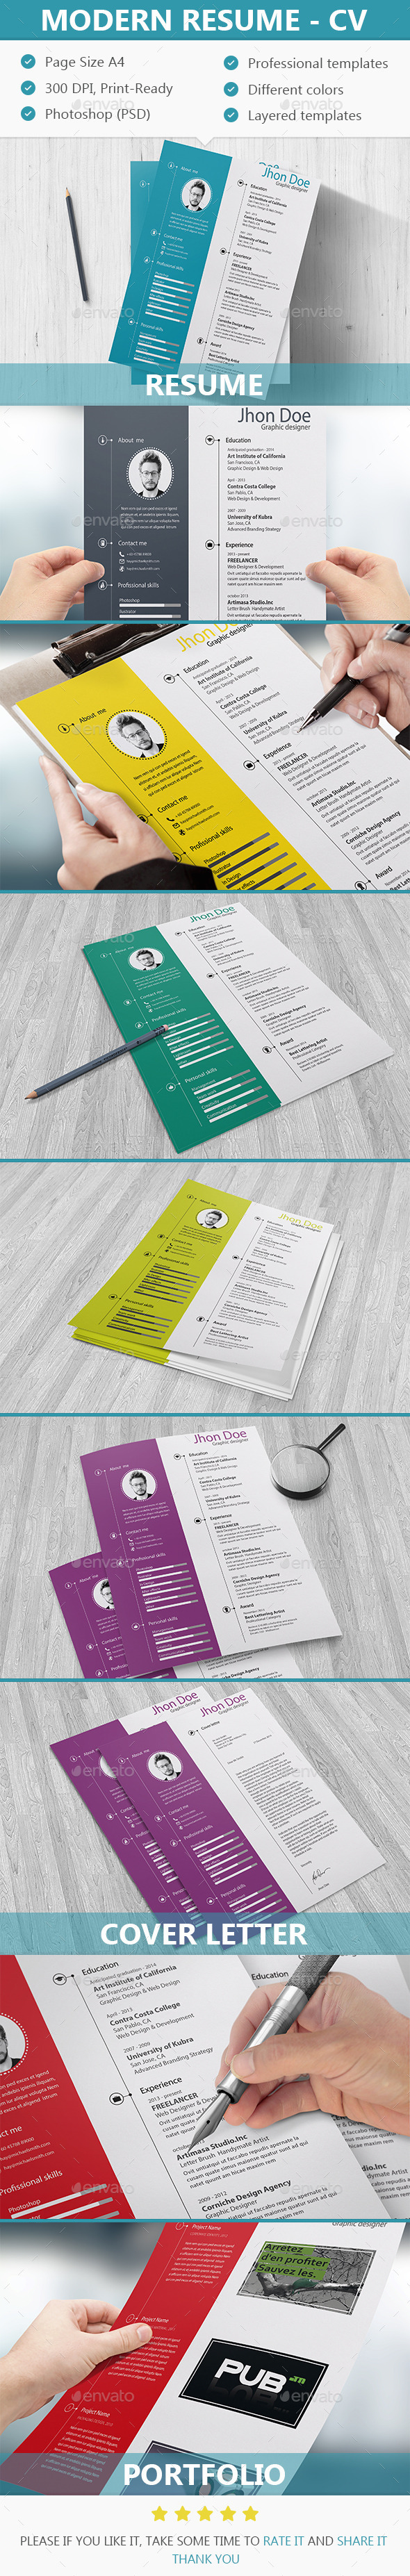 GraphicRiver Modern Resume CV 10859882